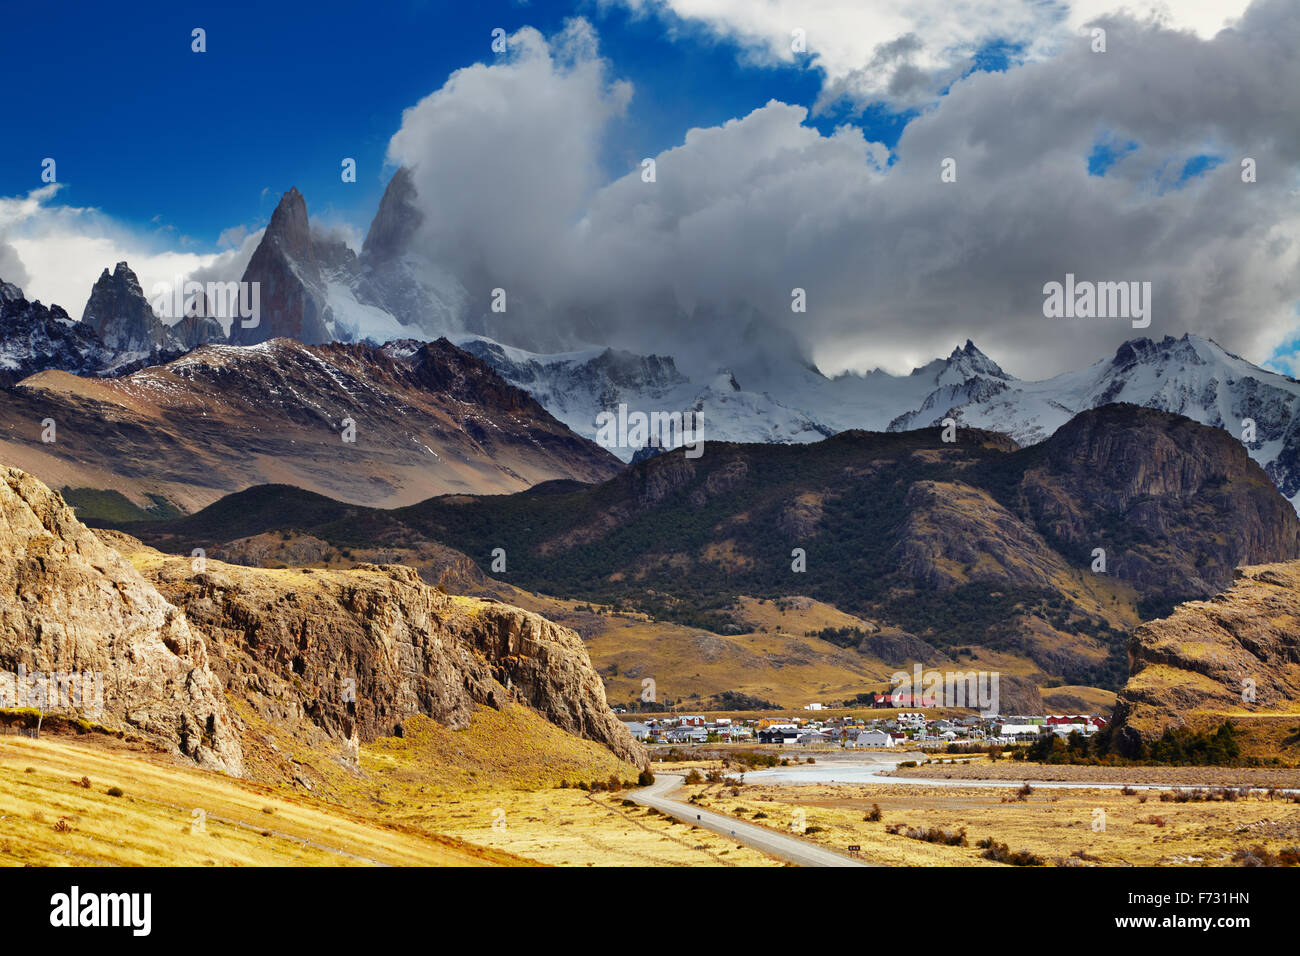 El Chalten is a small town near the mount Fitz Roy; the trekking capital of Argentina - Stock Image